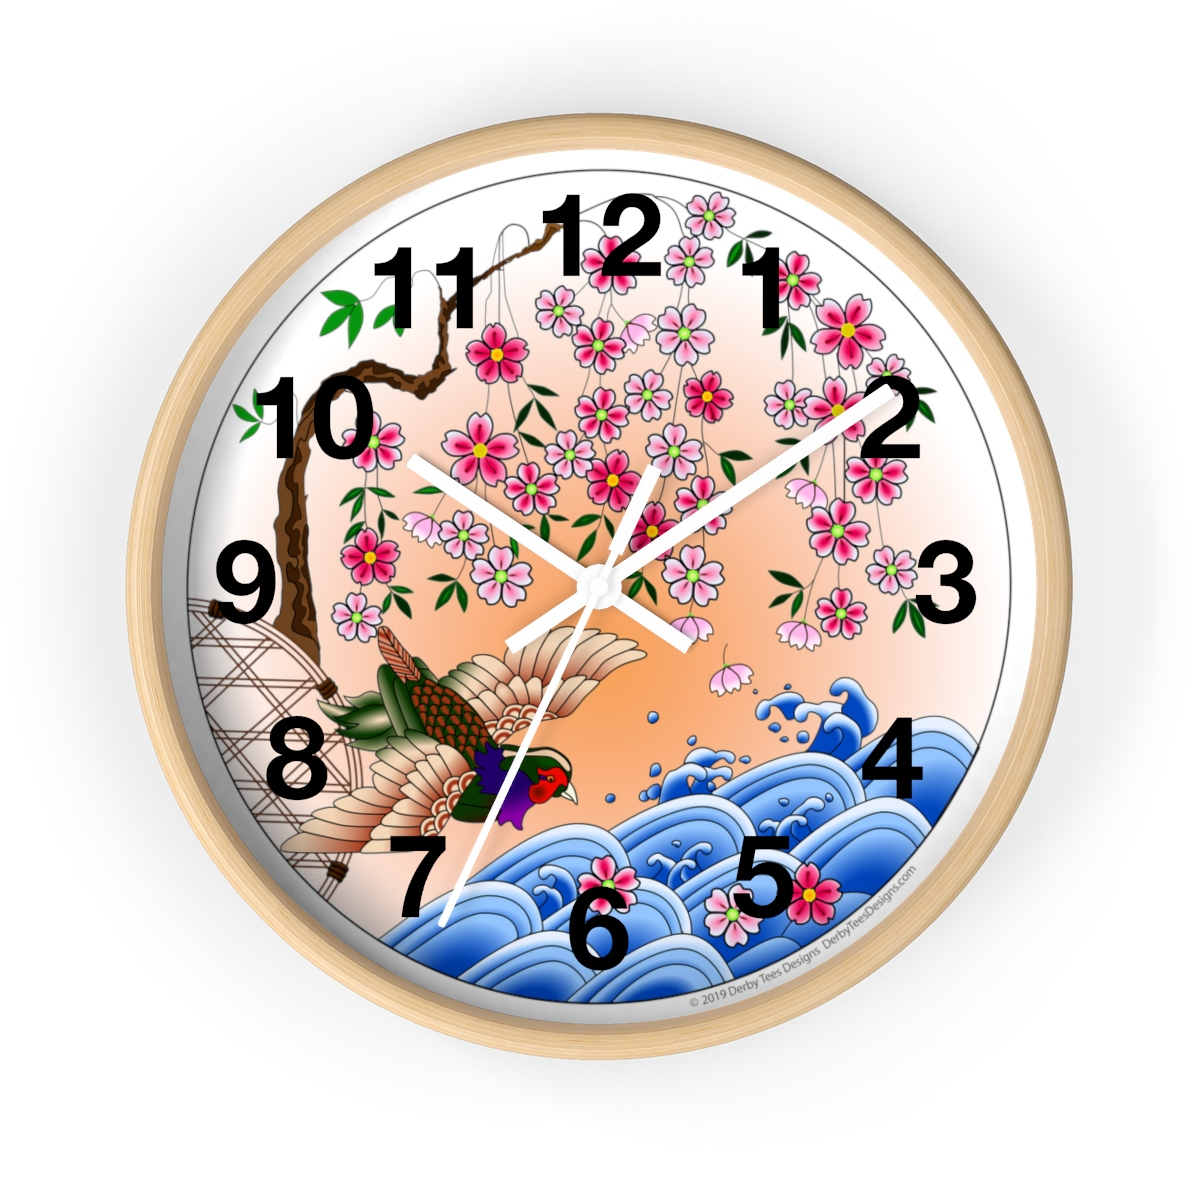 Statement Wall Clocks Japanese Cherry Blossom Pheasant Wall Clock Derby Tees